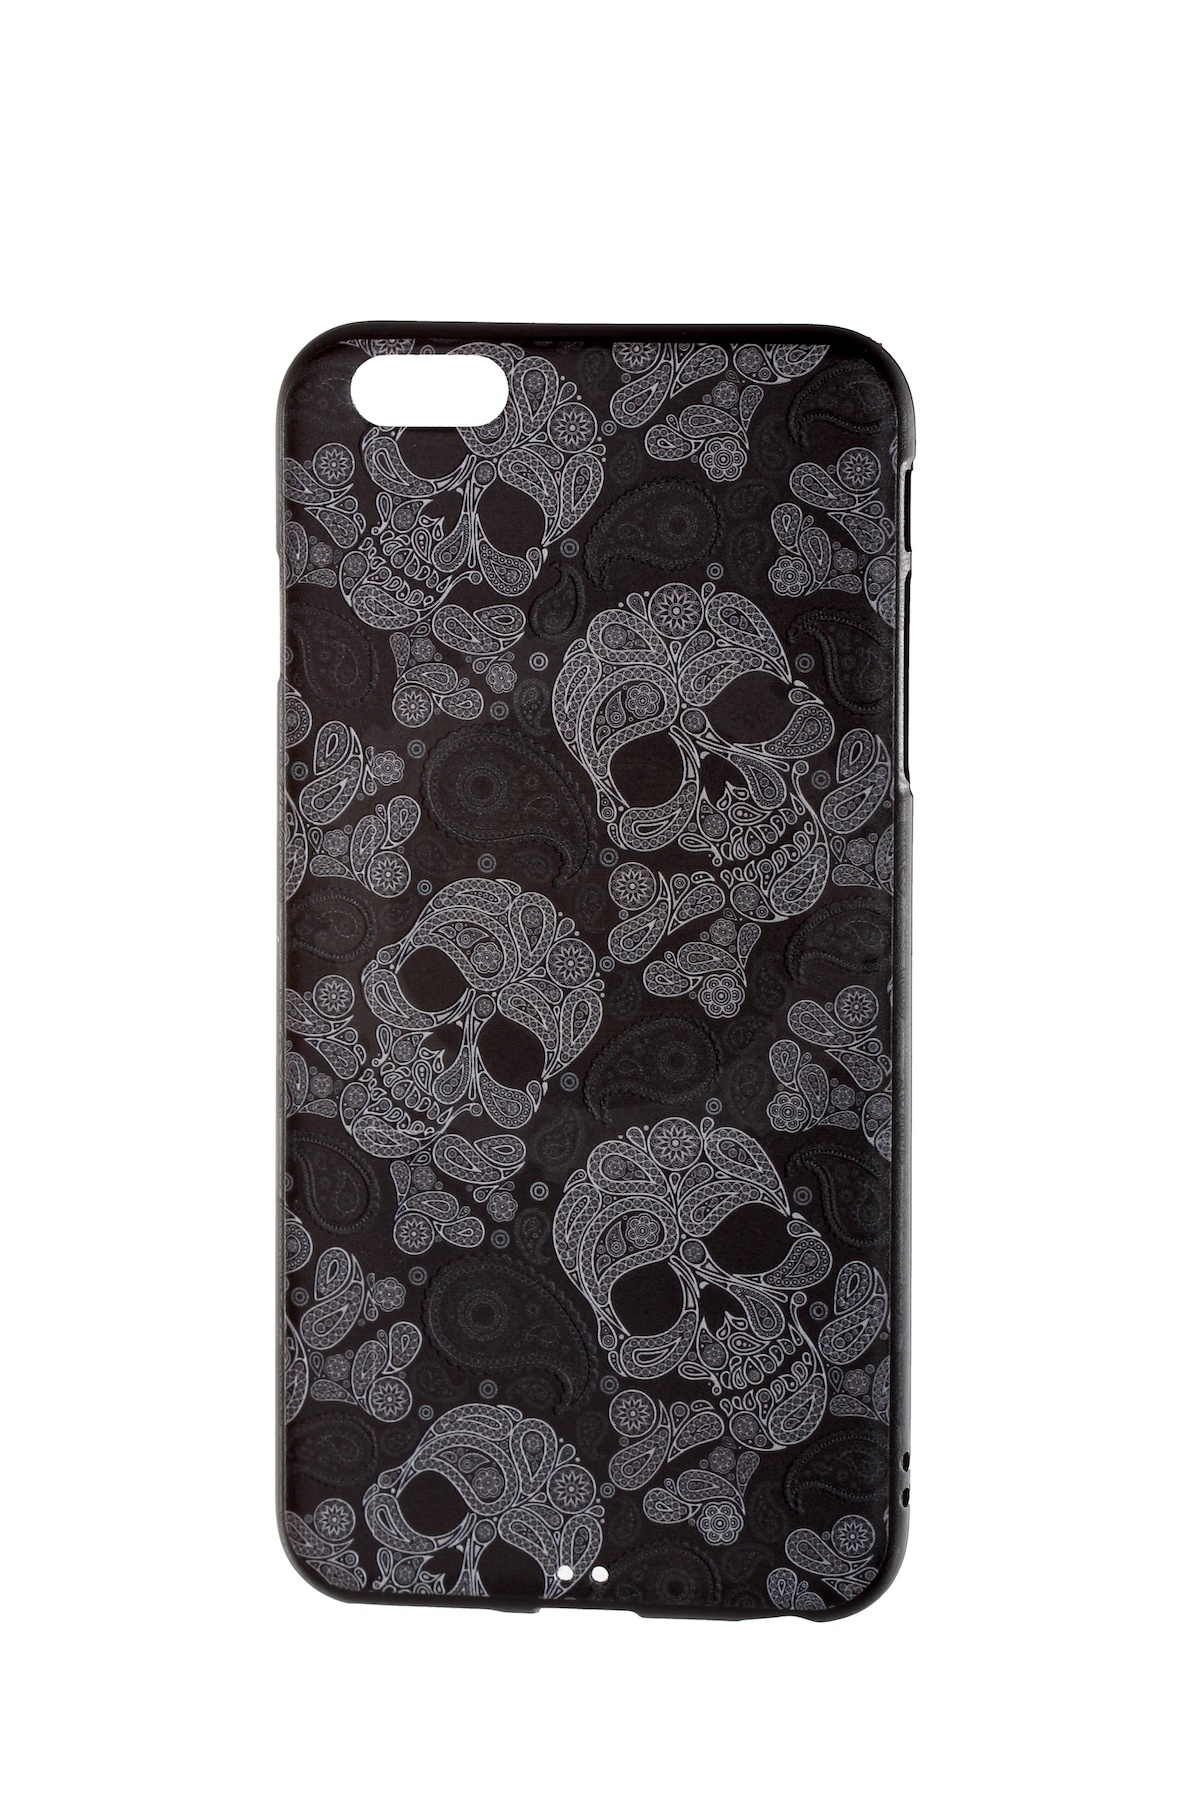 Купить чехол jolly roger для iphone 6 plus/6s plus